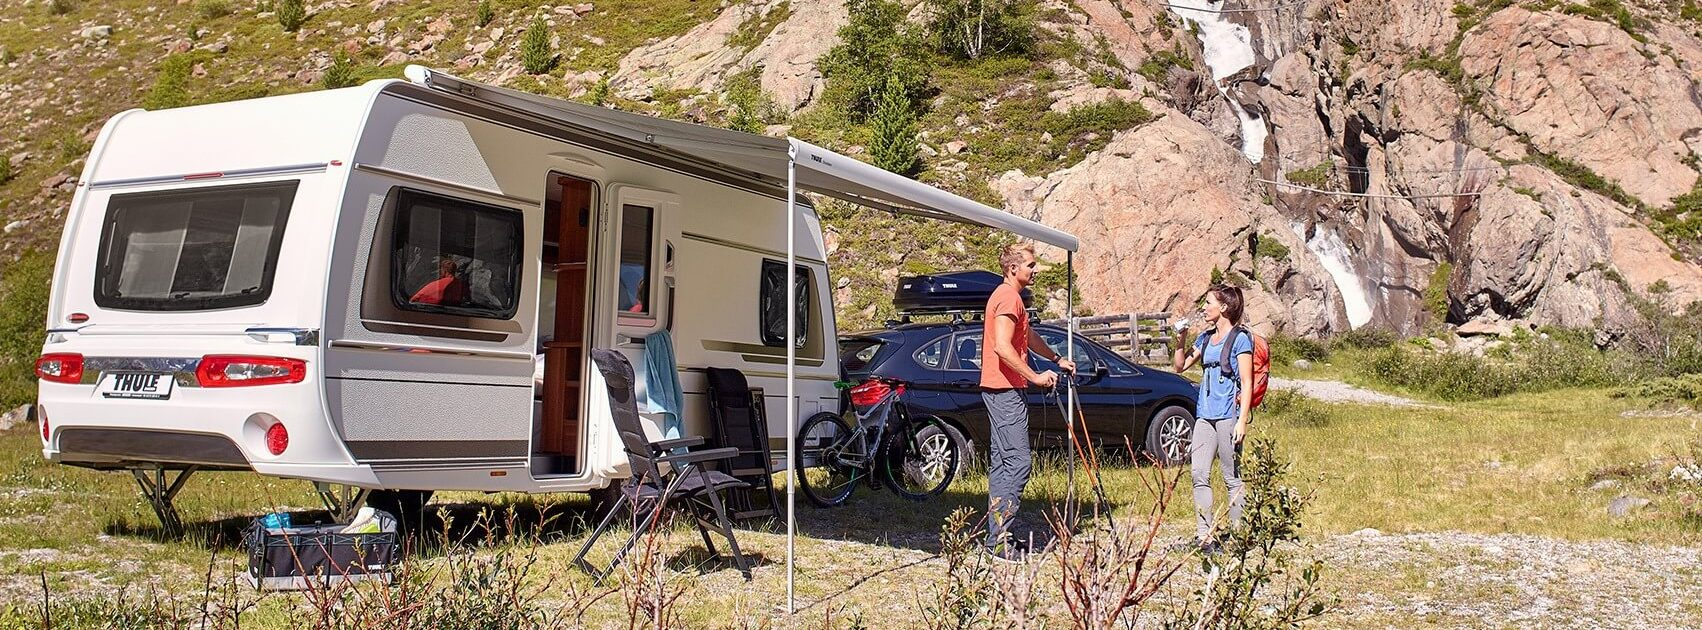 Thule Omnisteor 6300 Awning